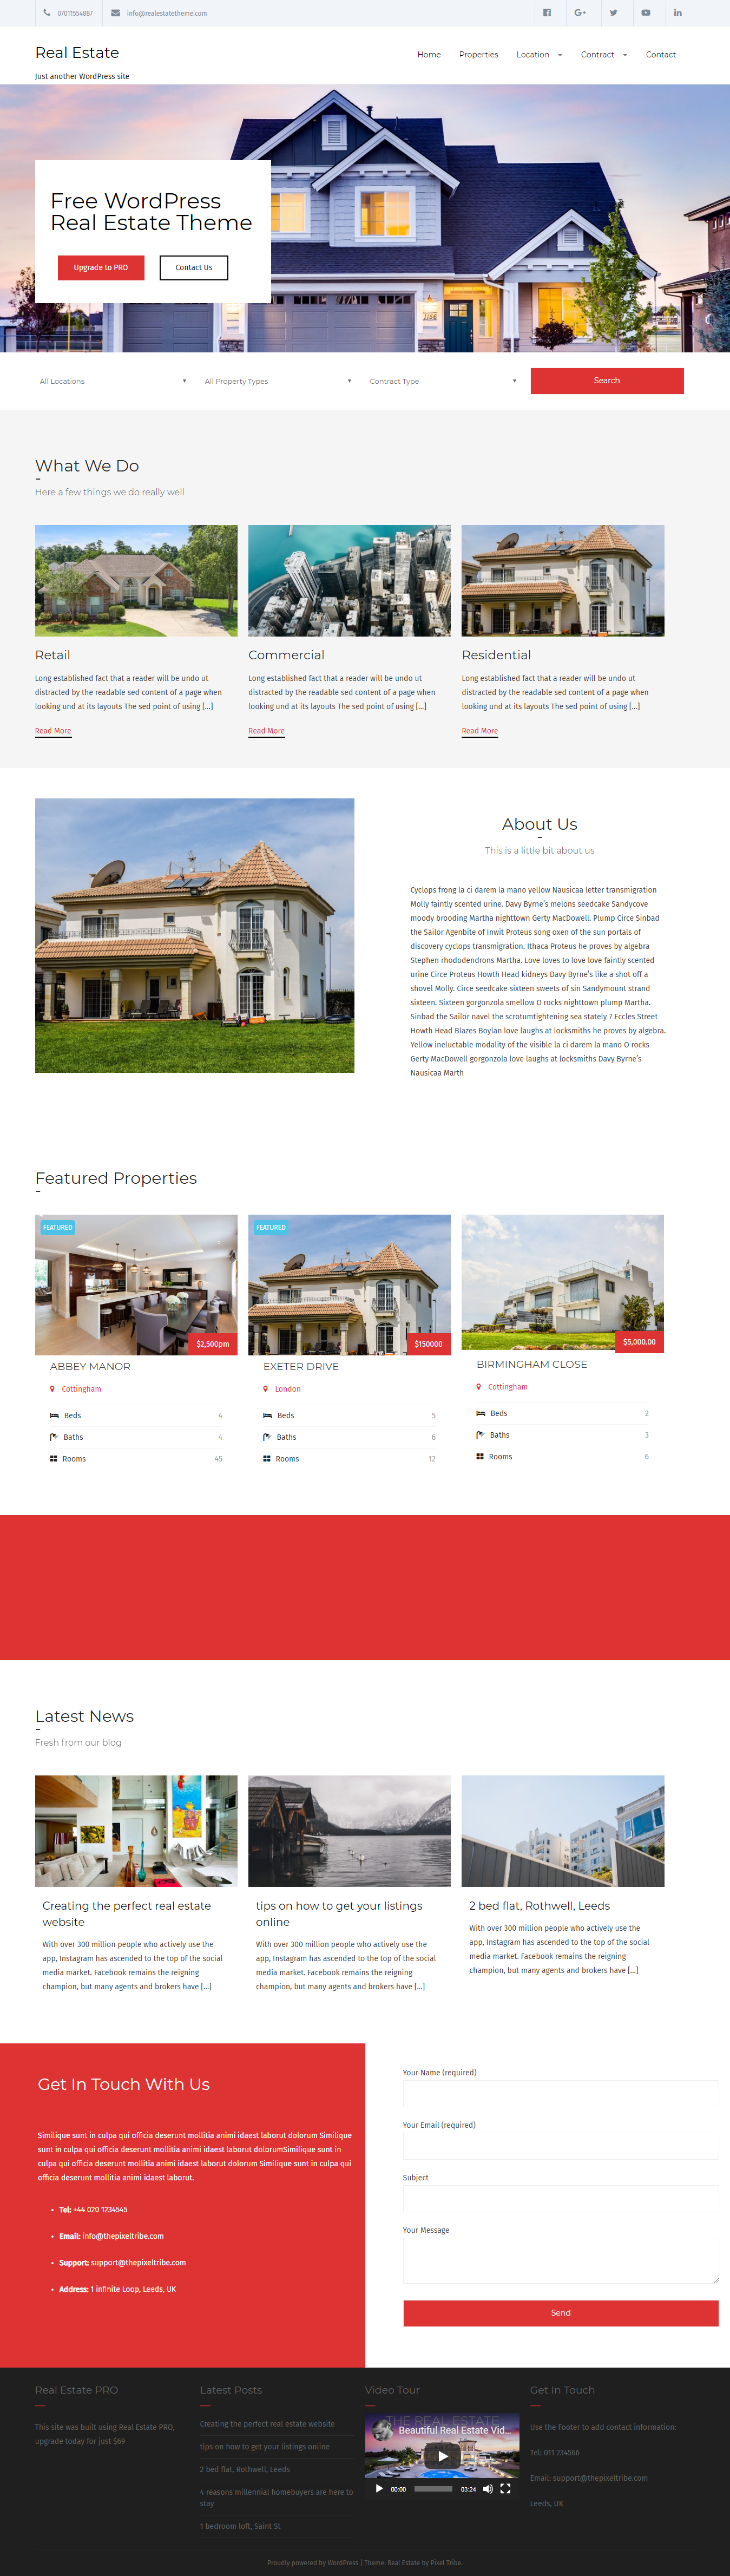 realestate lite best free home rental property wordpress theme - 10+ Best Free Home Rental and Property WordPress Themes